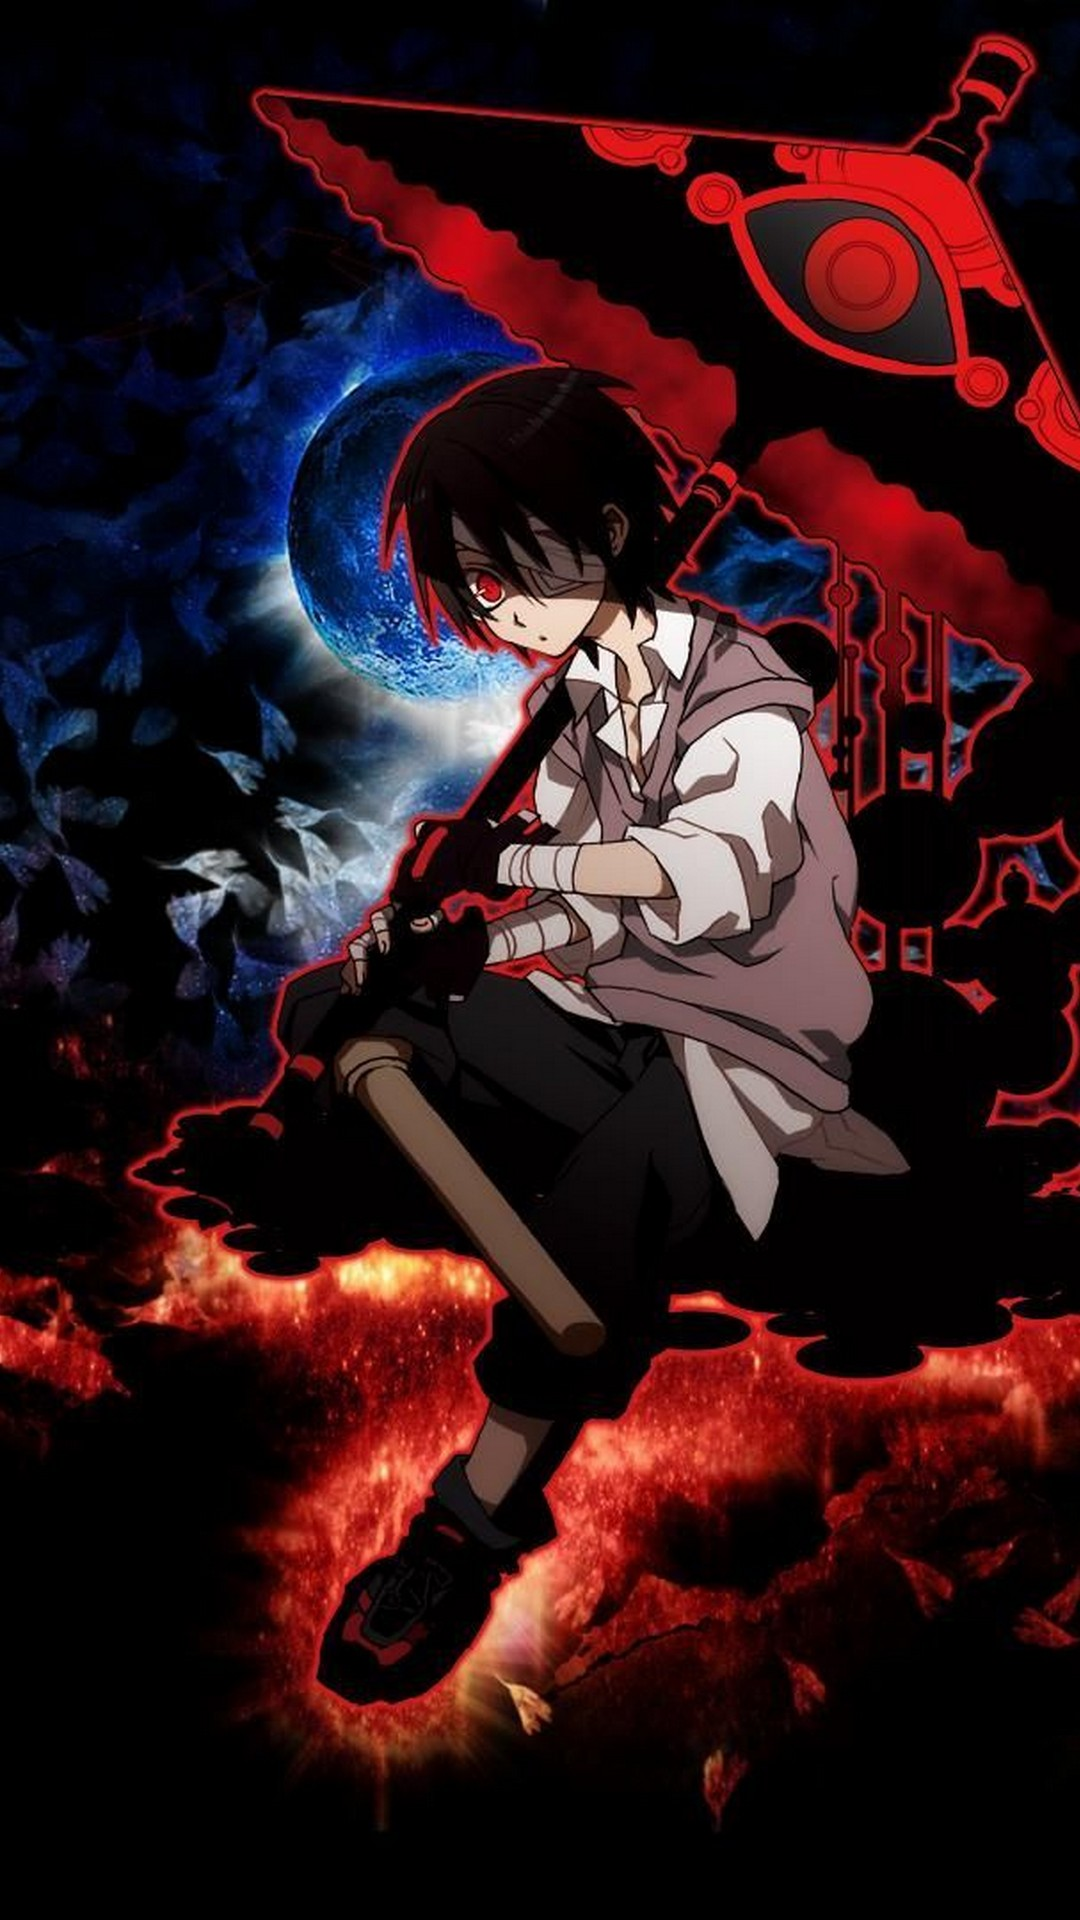 Cool Anime Android Wallpaper 2021 Android Wallpapers